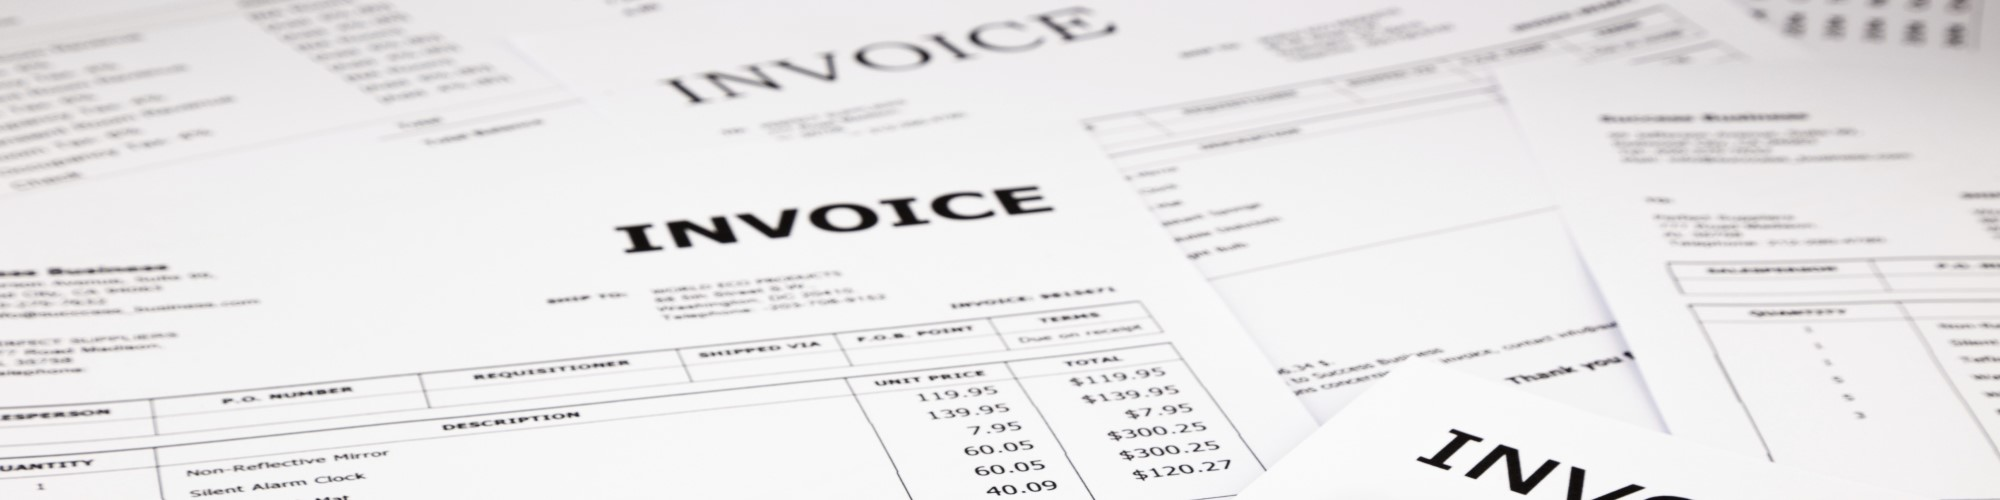 invoice images 2000 500